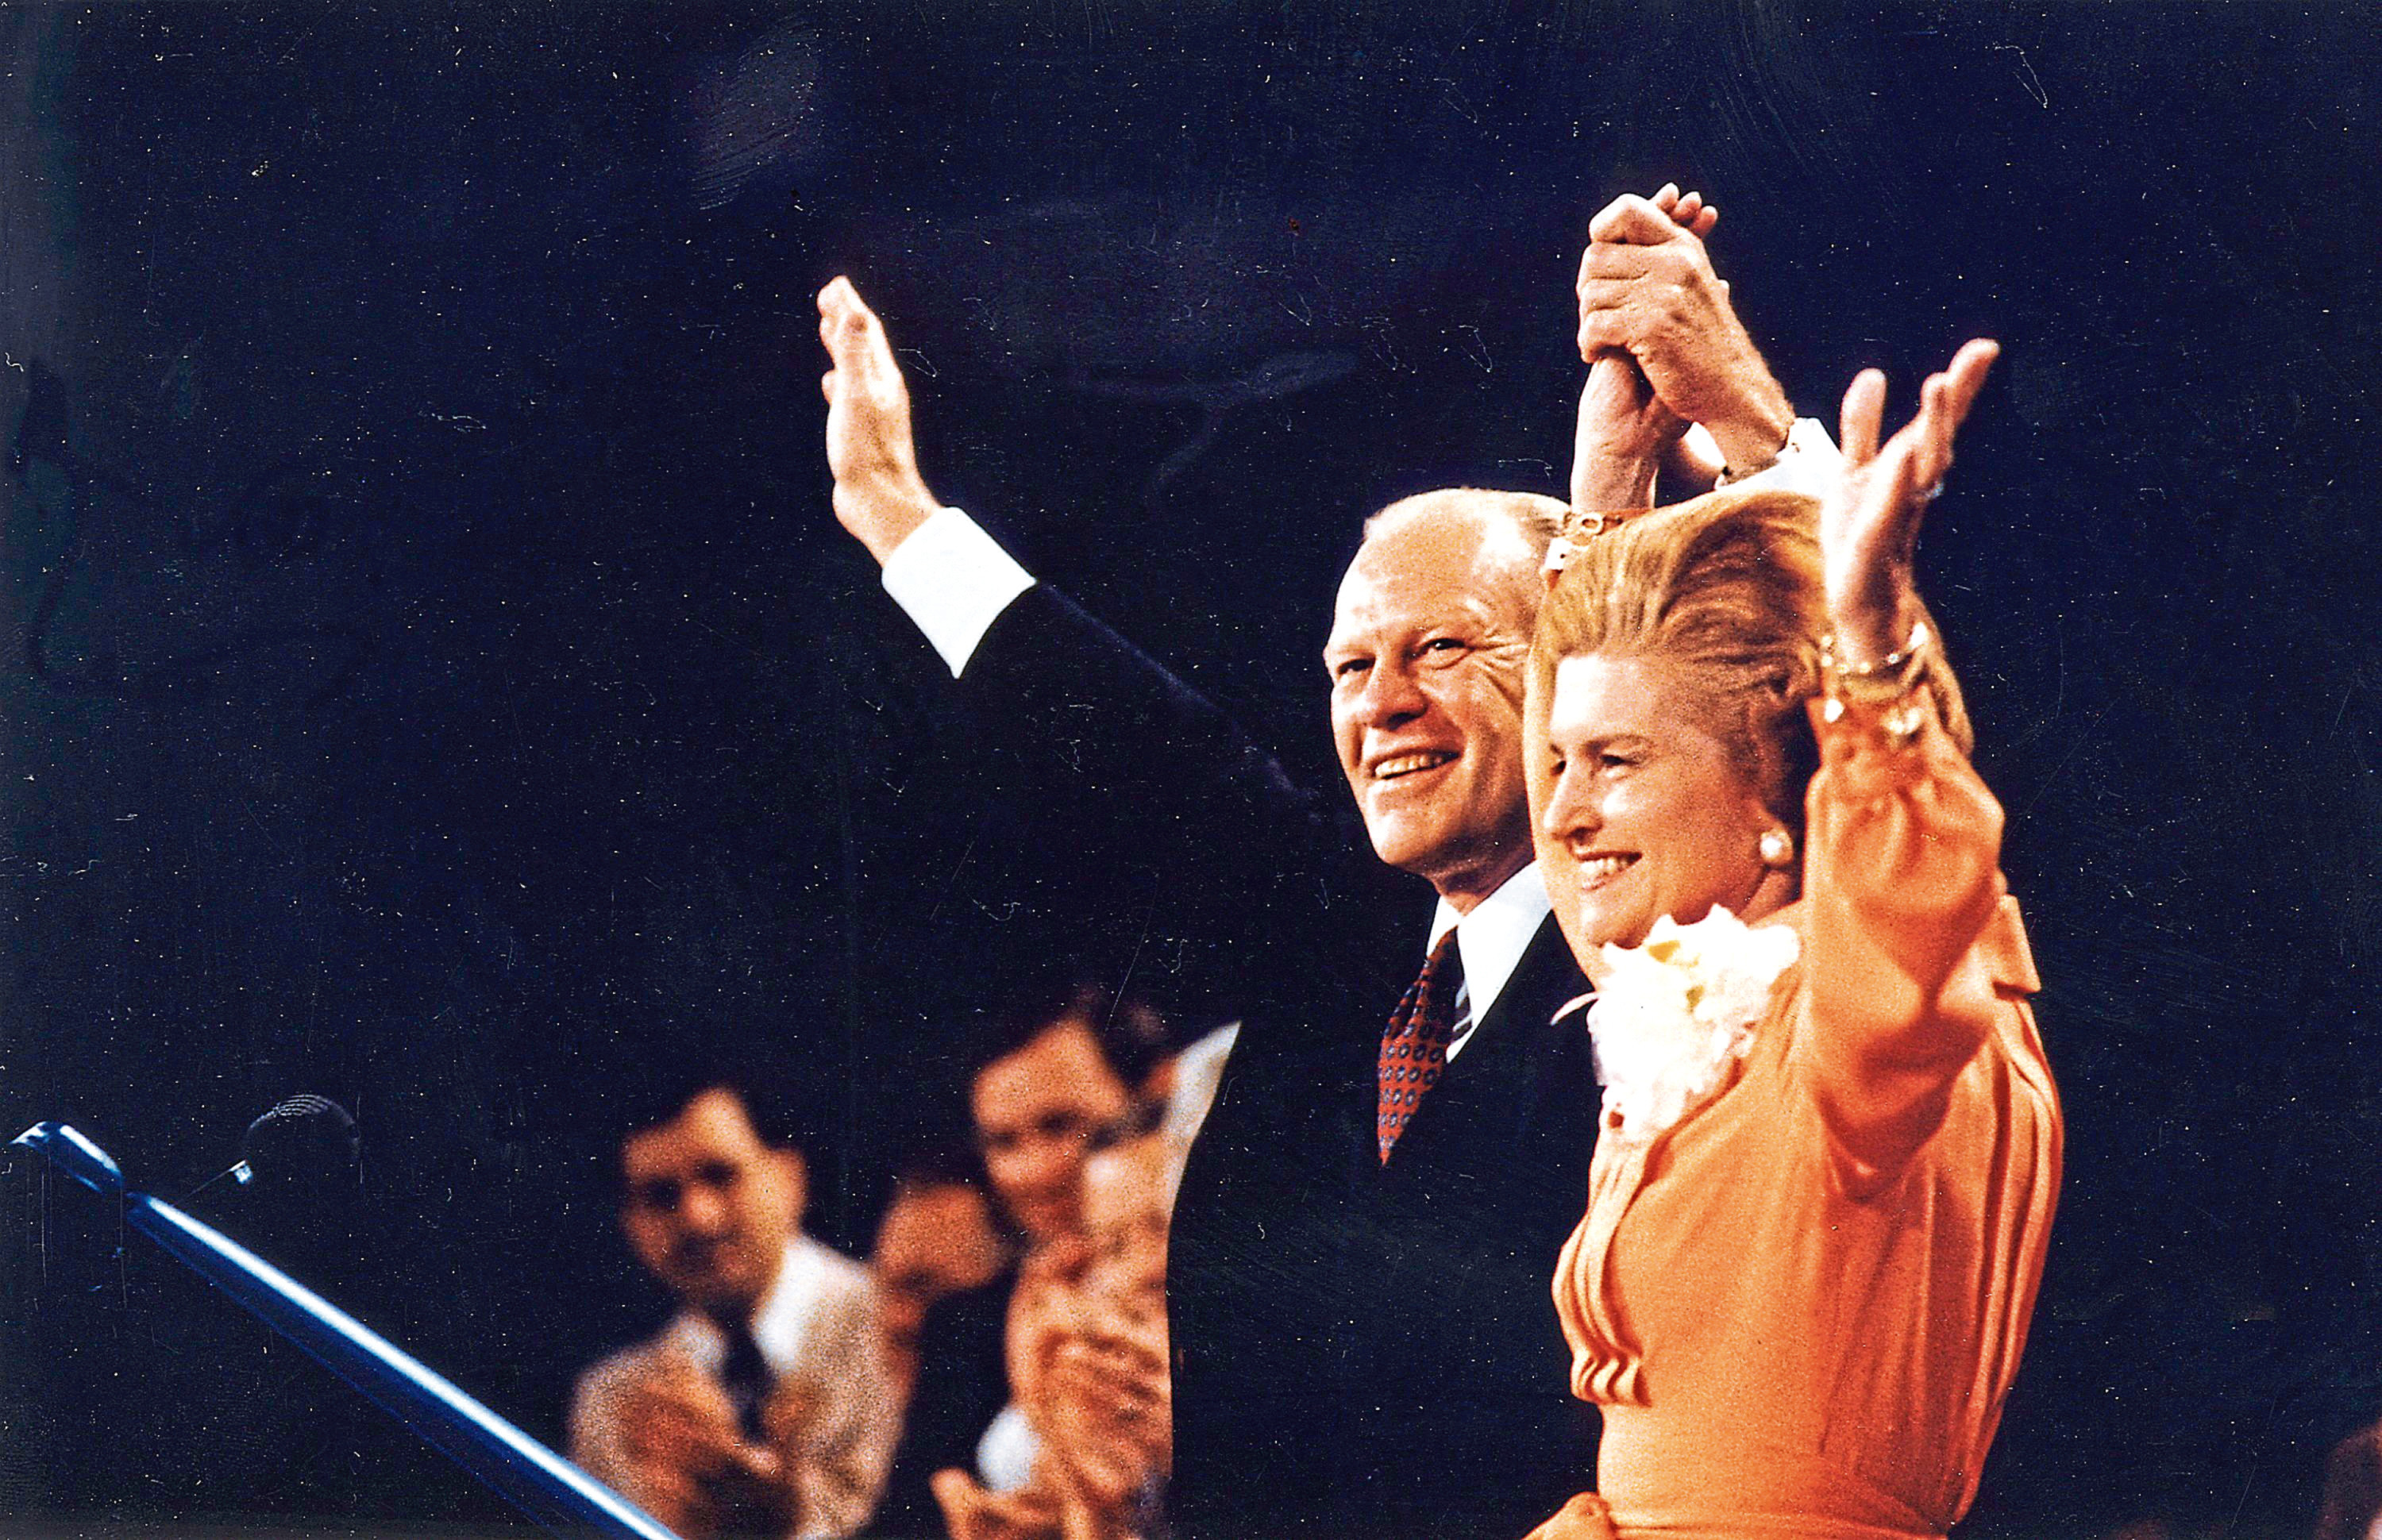 President Ford and Betty Ford wave to the crowd at the Republican National Convention in Kansas City, Missouri August 19, 1976 (Karl Schumacher/Gerald R. Ford Library via Getty Images)